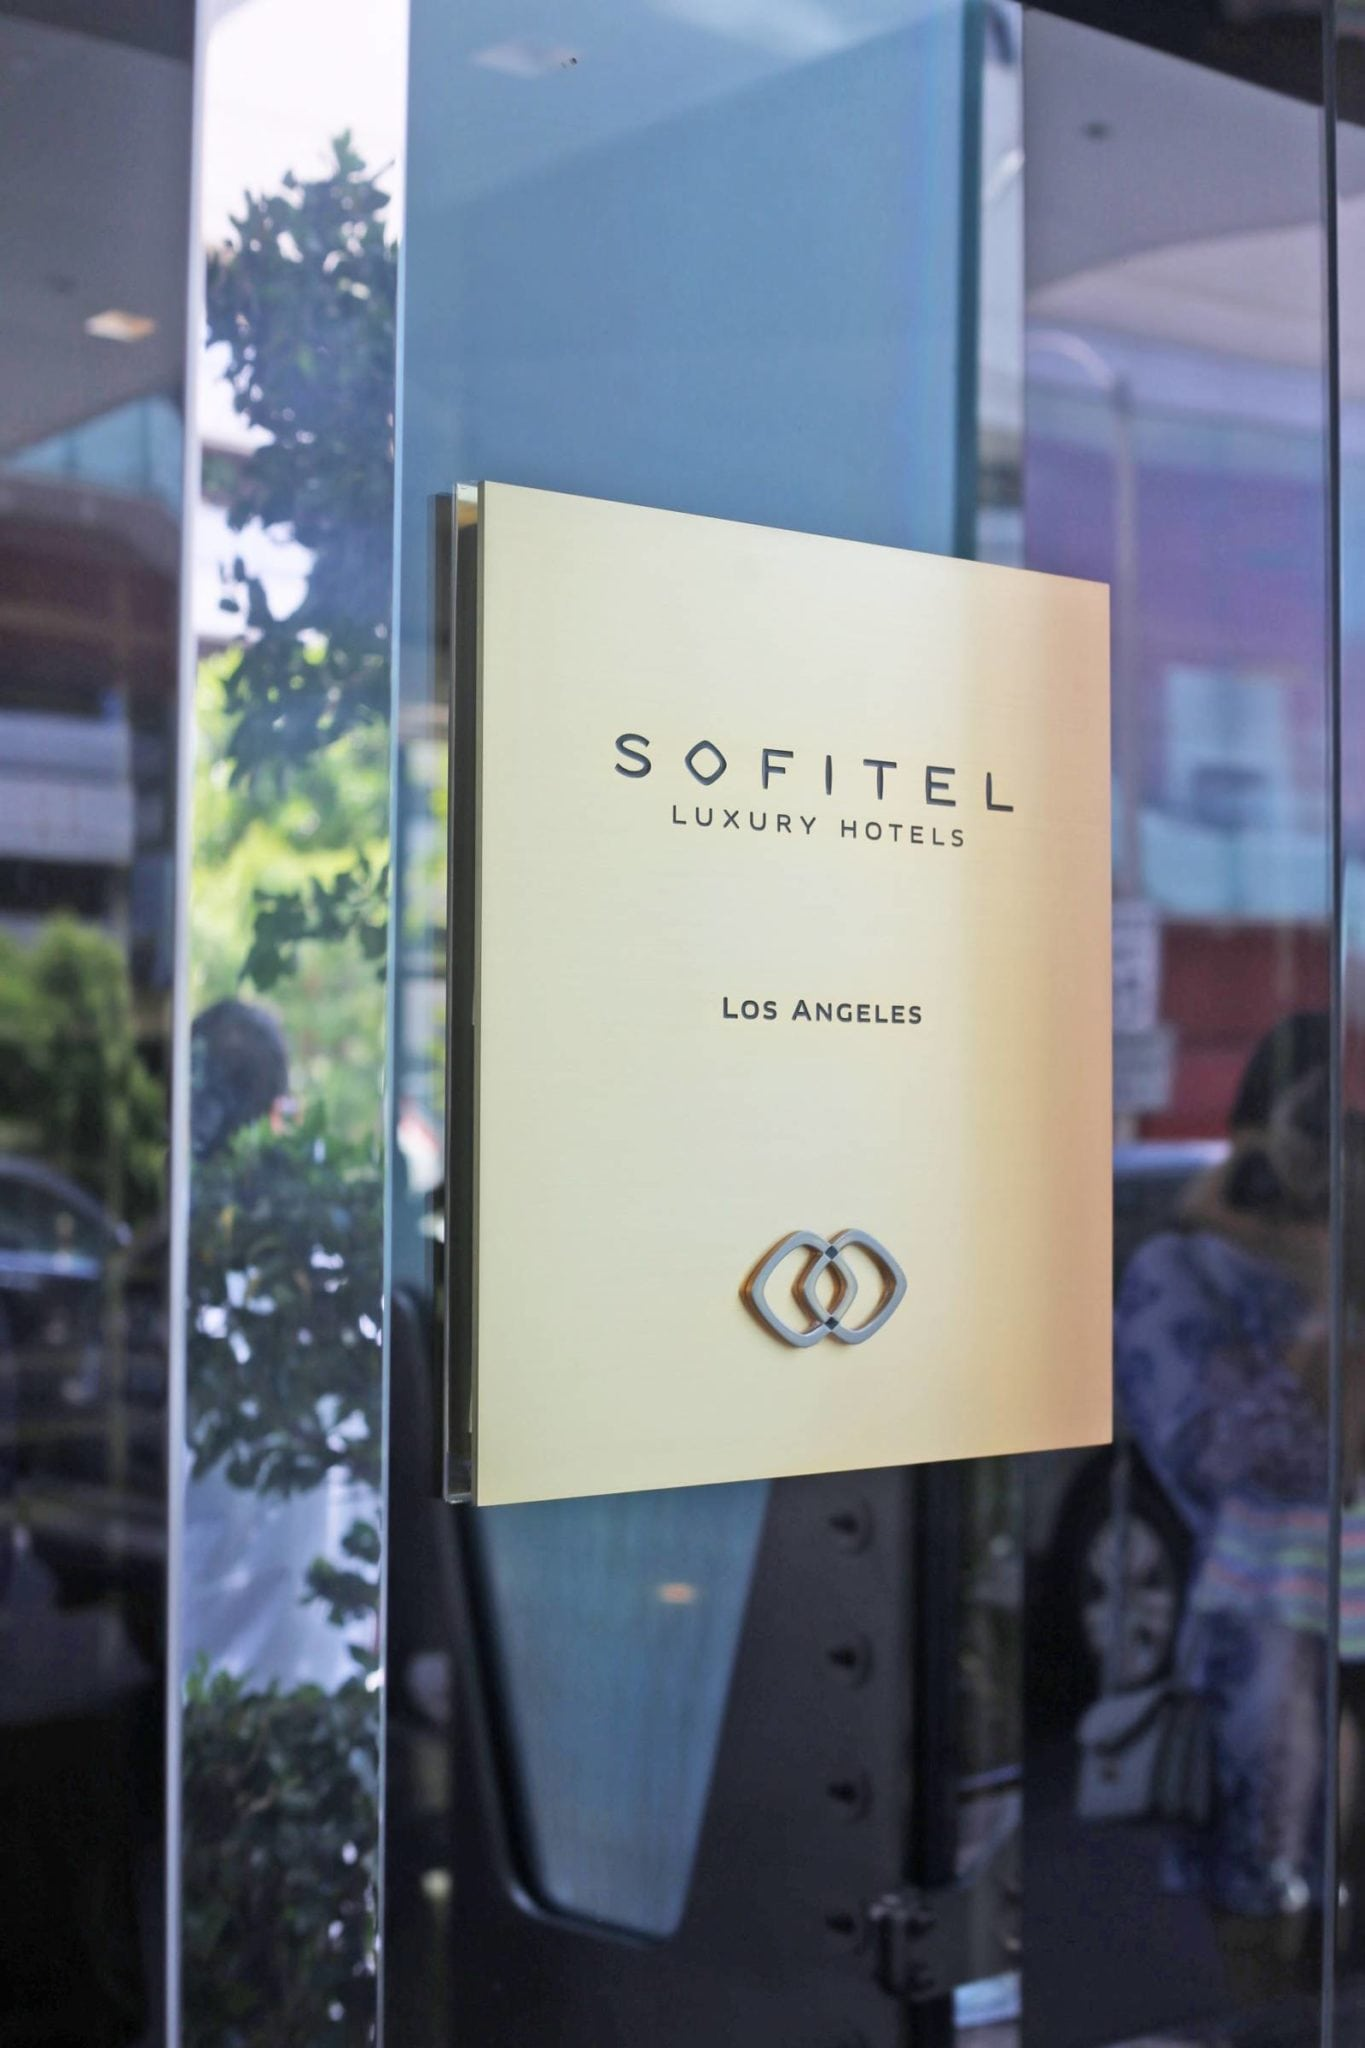 sofitel luxury hotels in socal